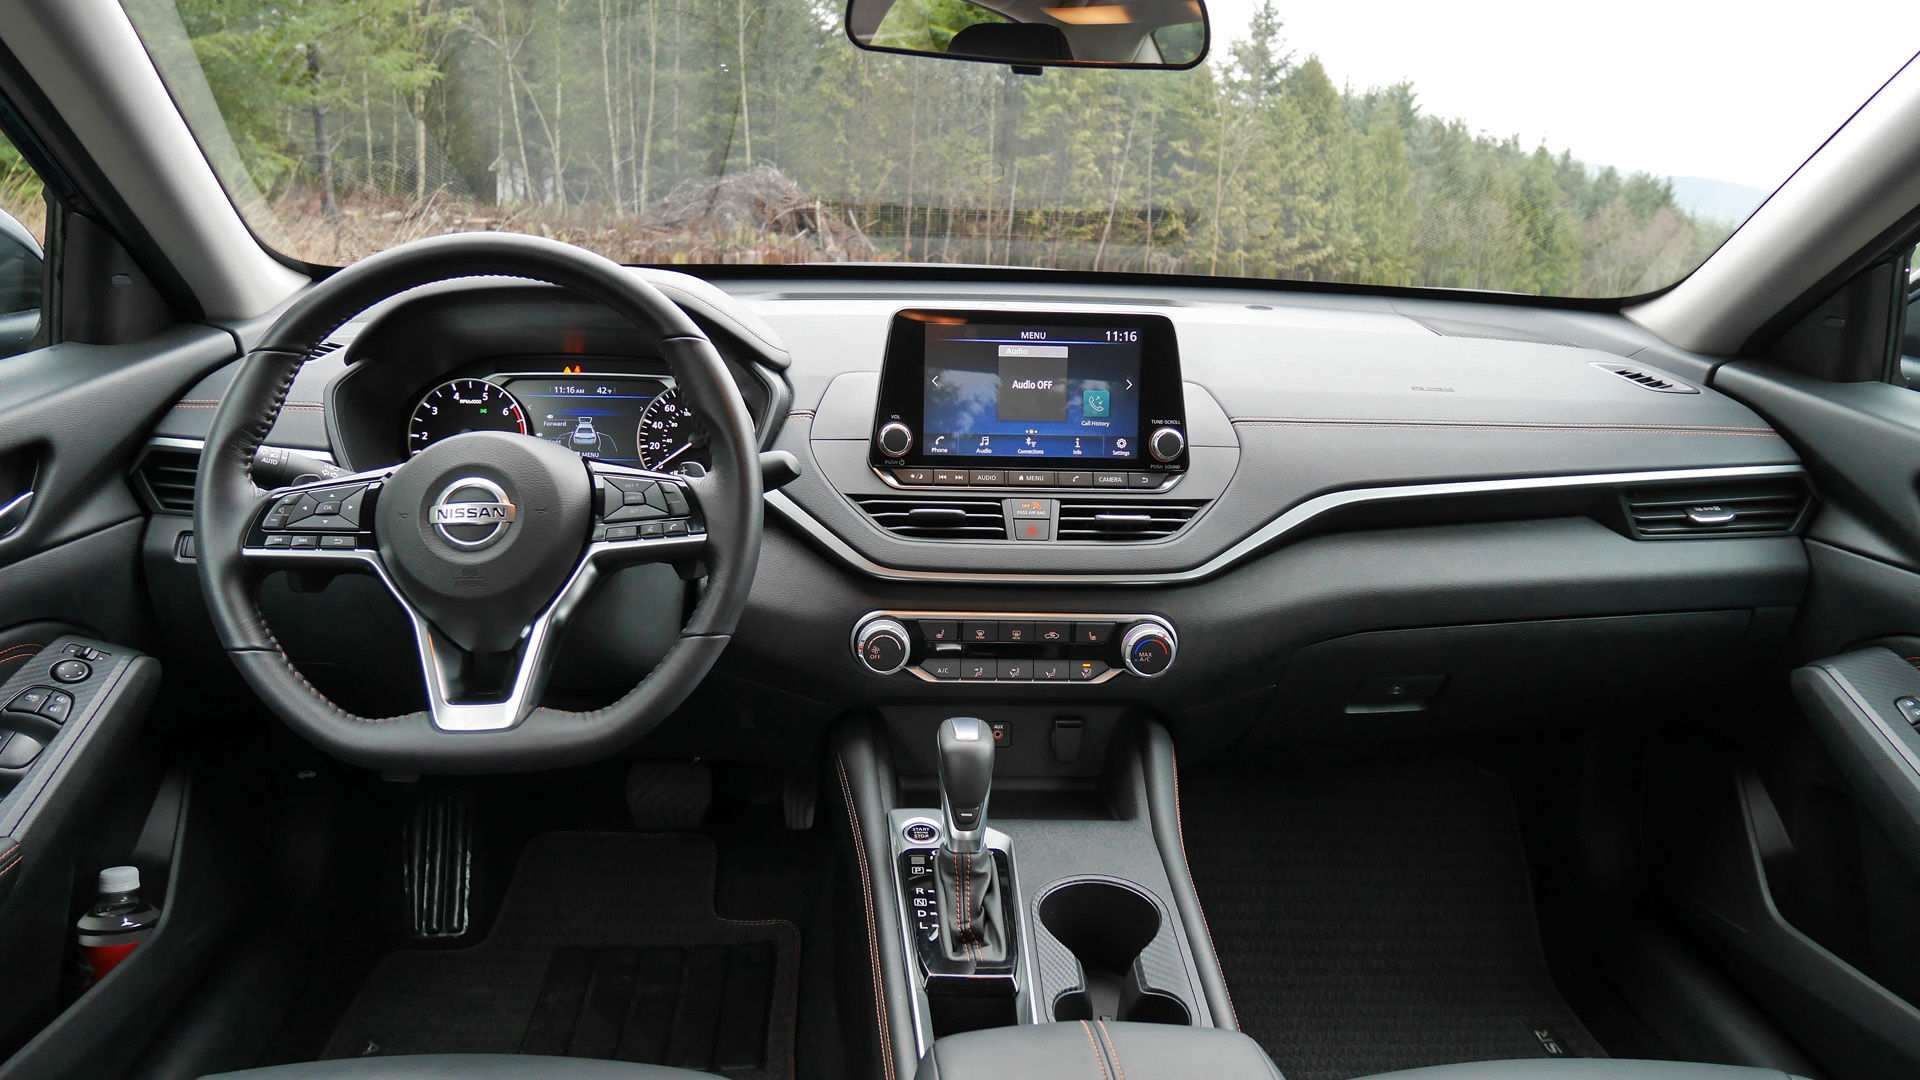 50 Best Review 2019 Nissan Altima Interior Reviews by 2019 Nissan Altima Interior